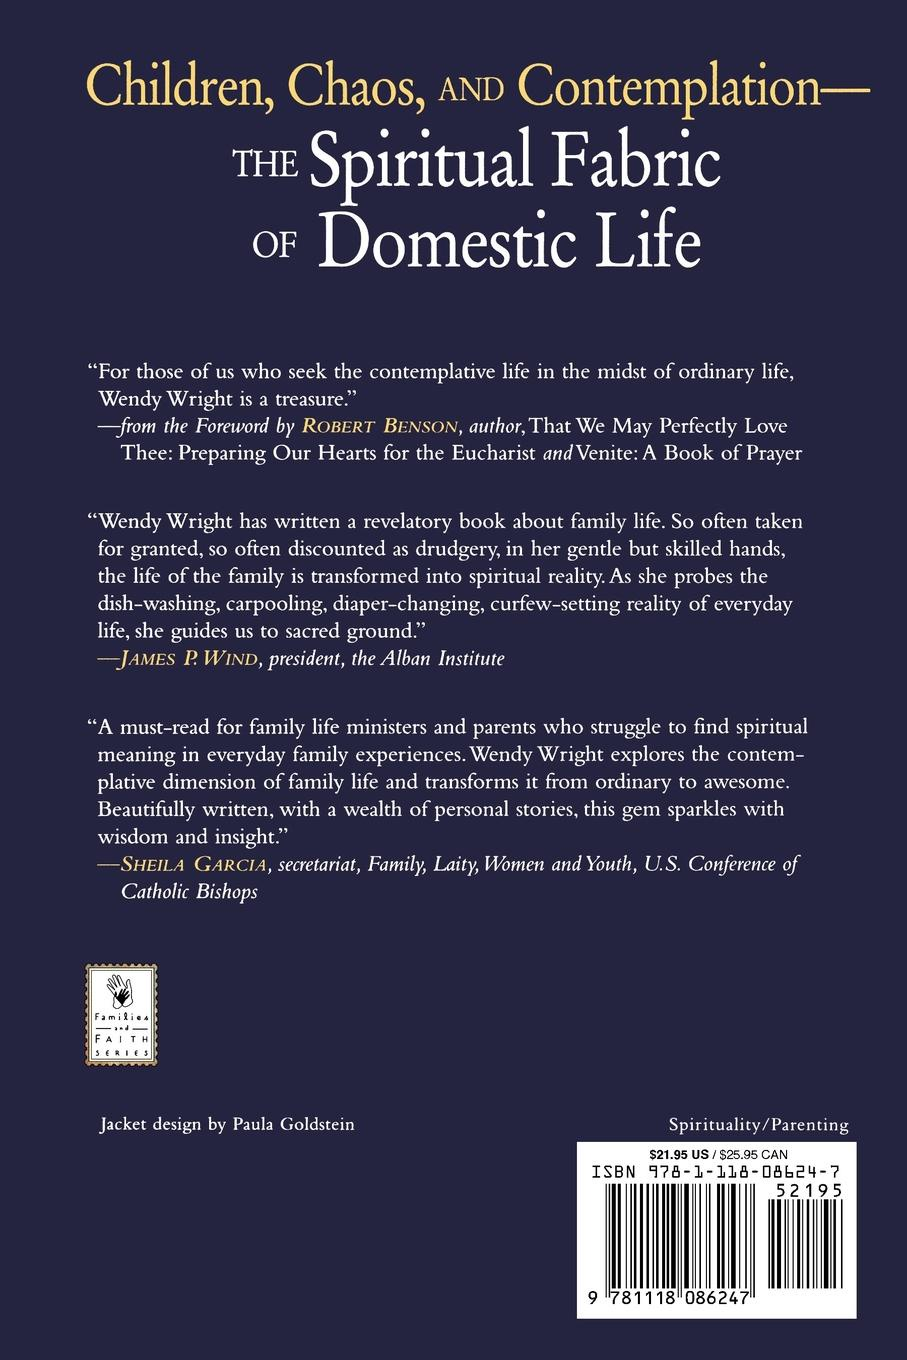 Wendy M. Wright, Wright Seasons of a Family's Life. Cultivating the Contemplative Spirit at Home цена и фото